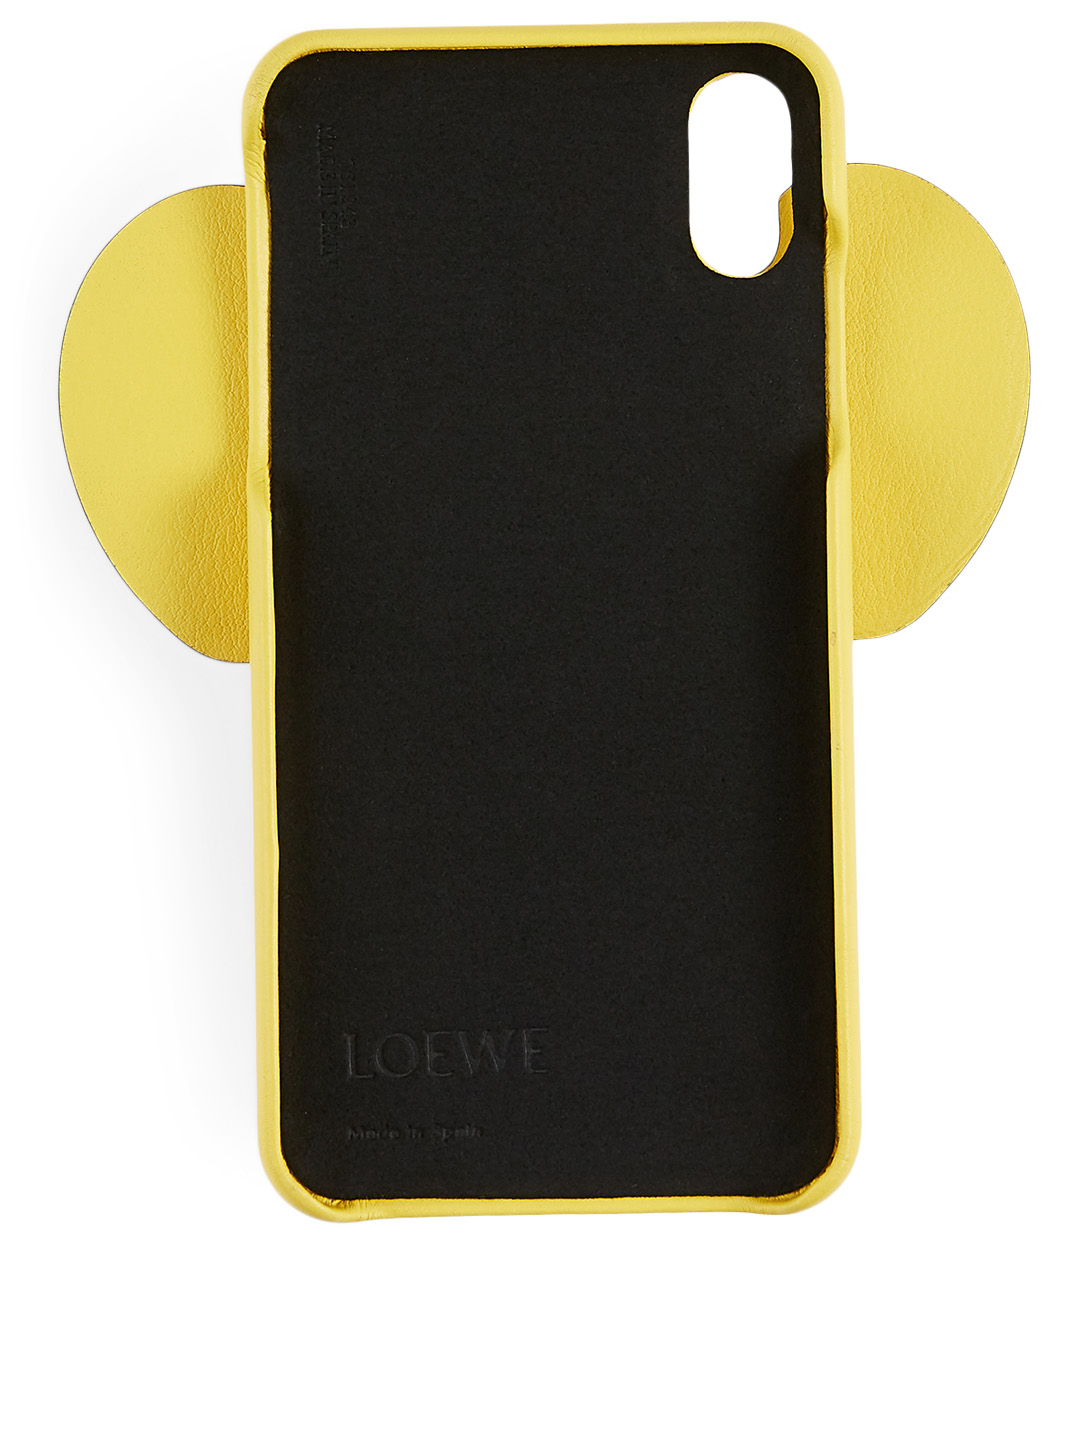 LOEWE XS Max Elephant Leather Phone Case Women's Yellow